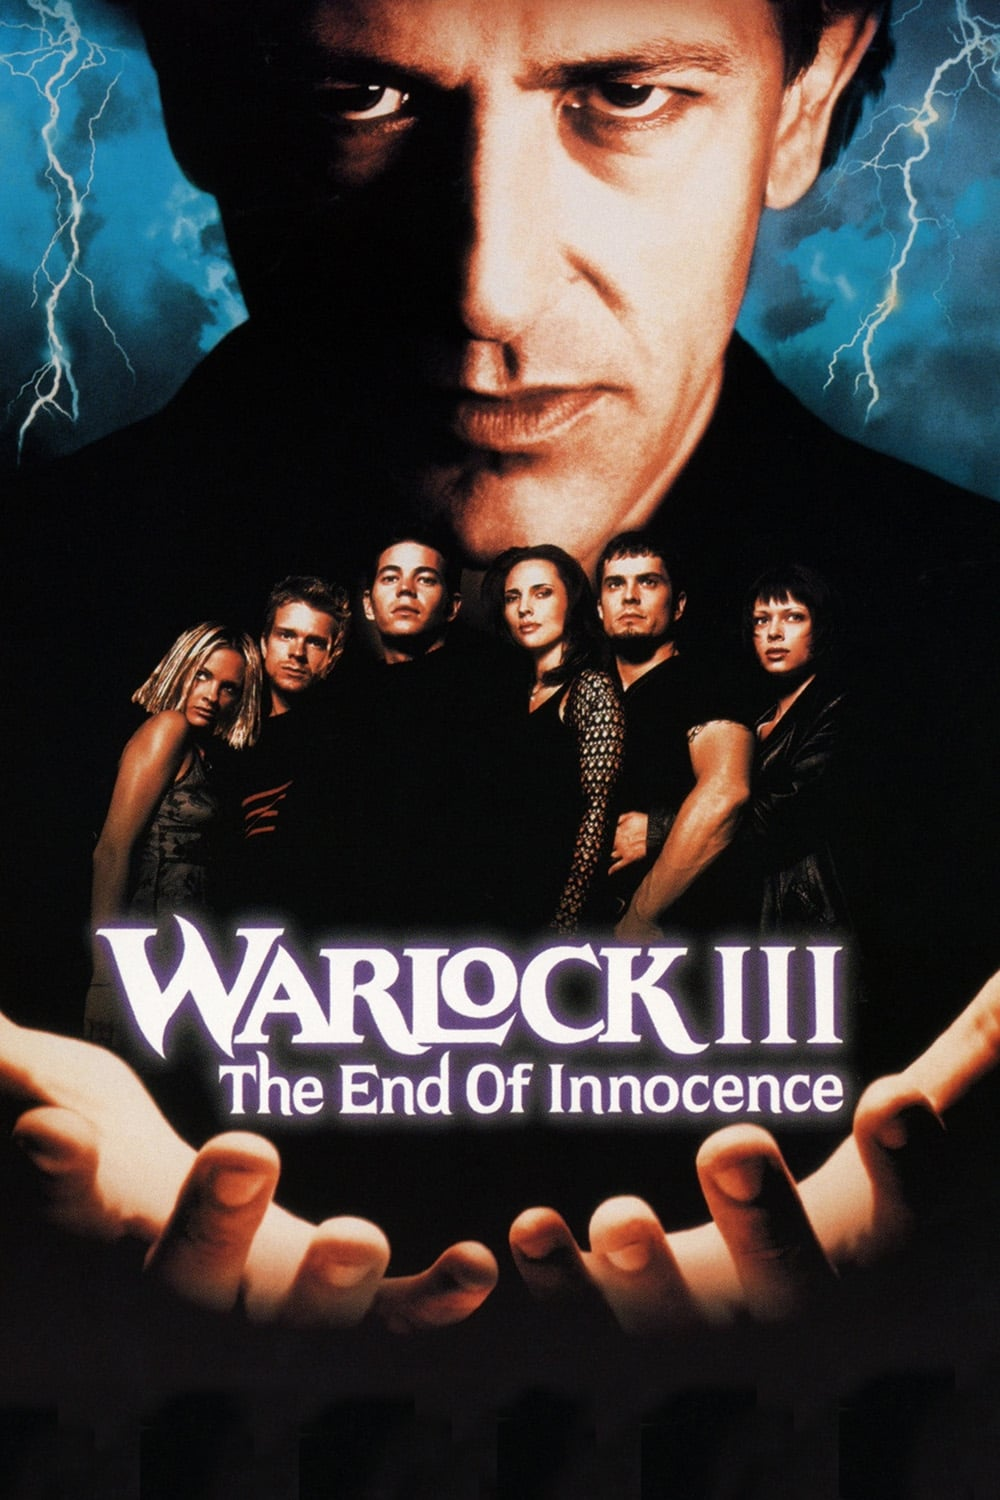 Warlock III: The End of Innocence (1999)